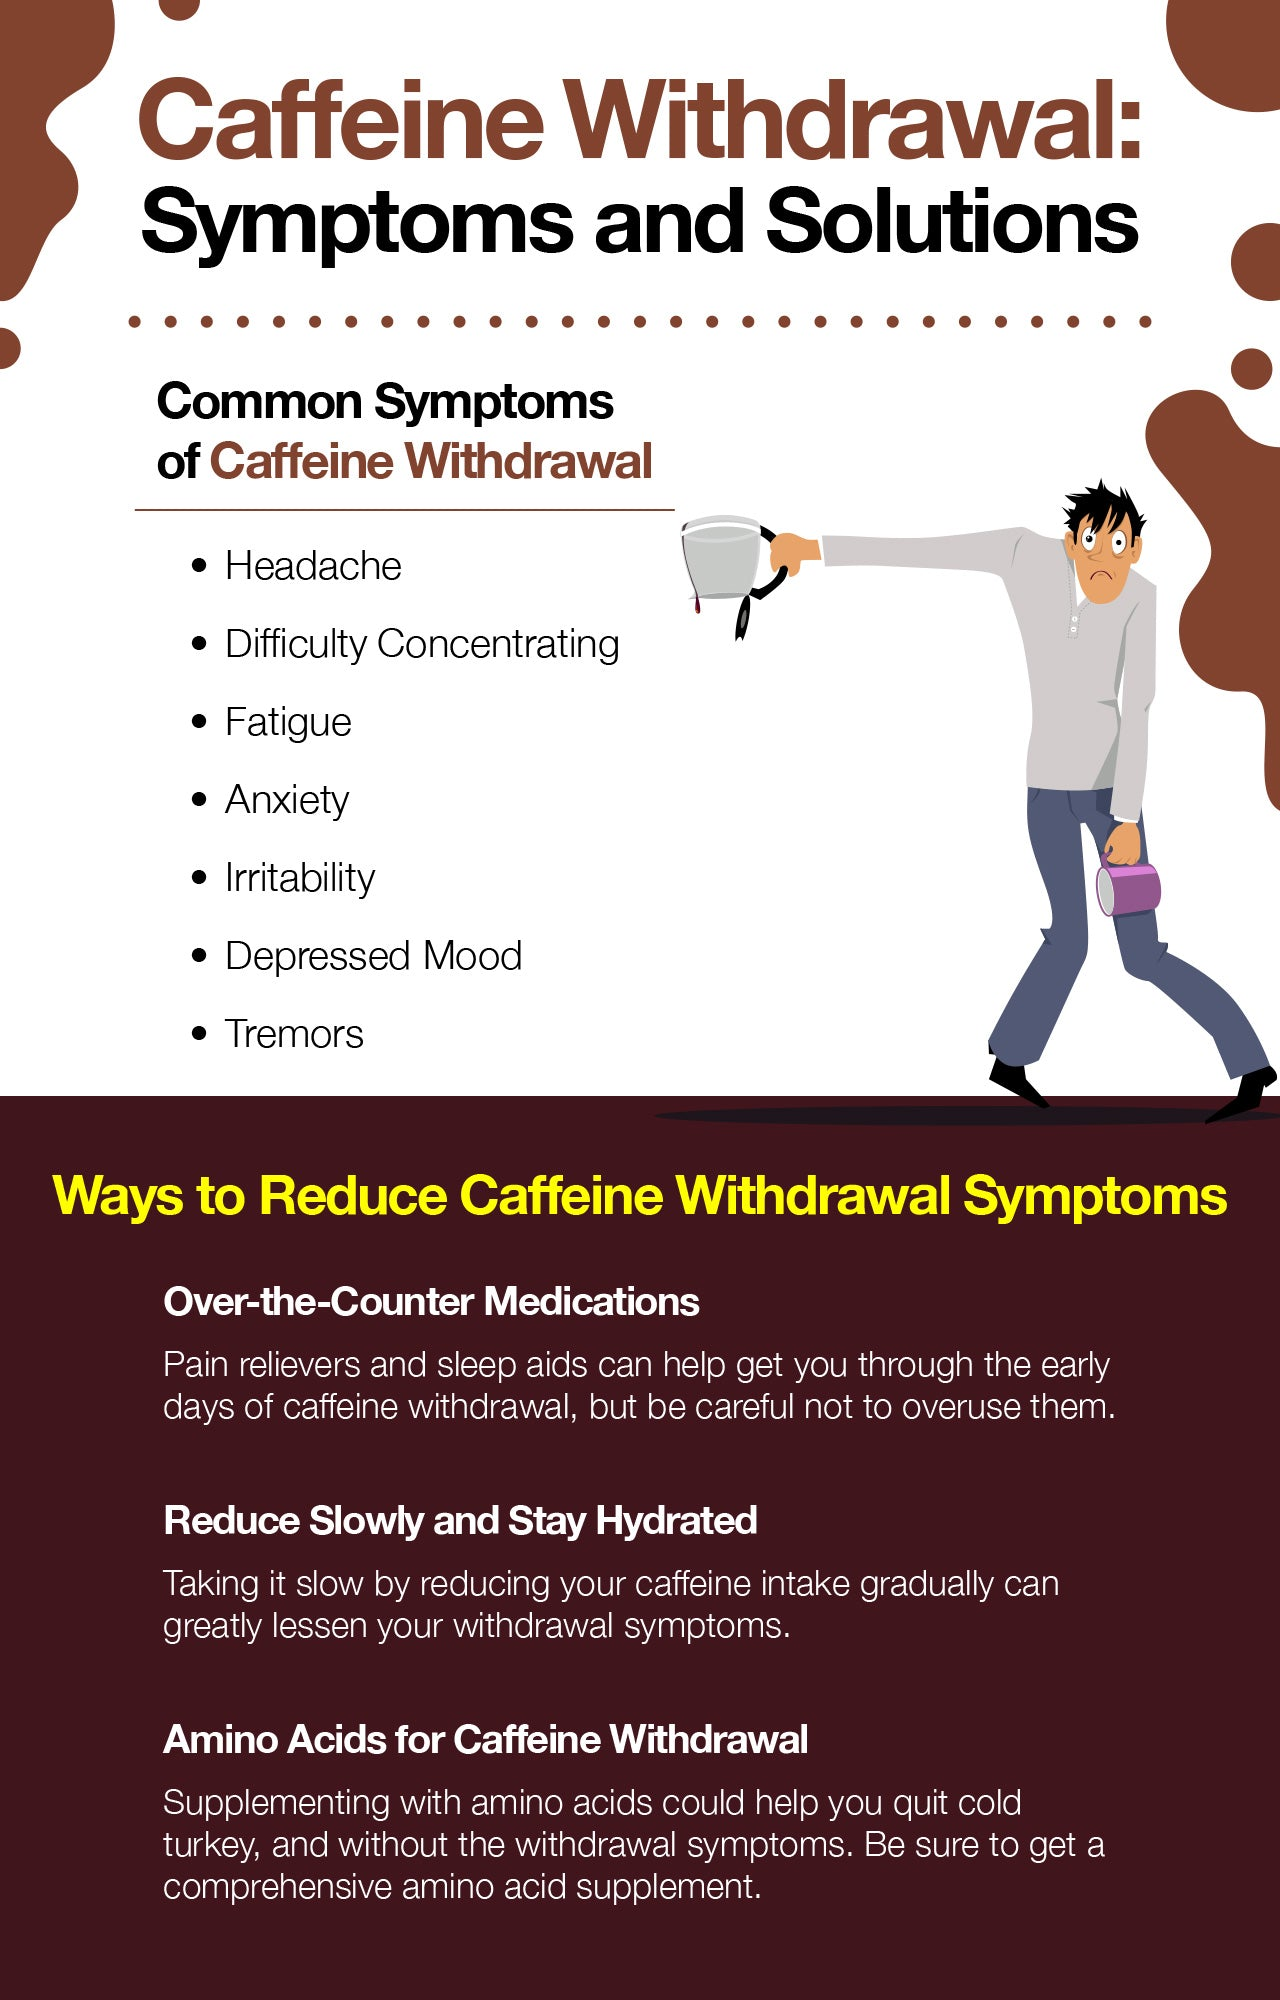 Caffeine withdrawal: symptoms and solutions.